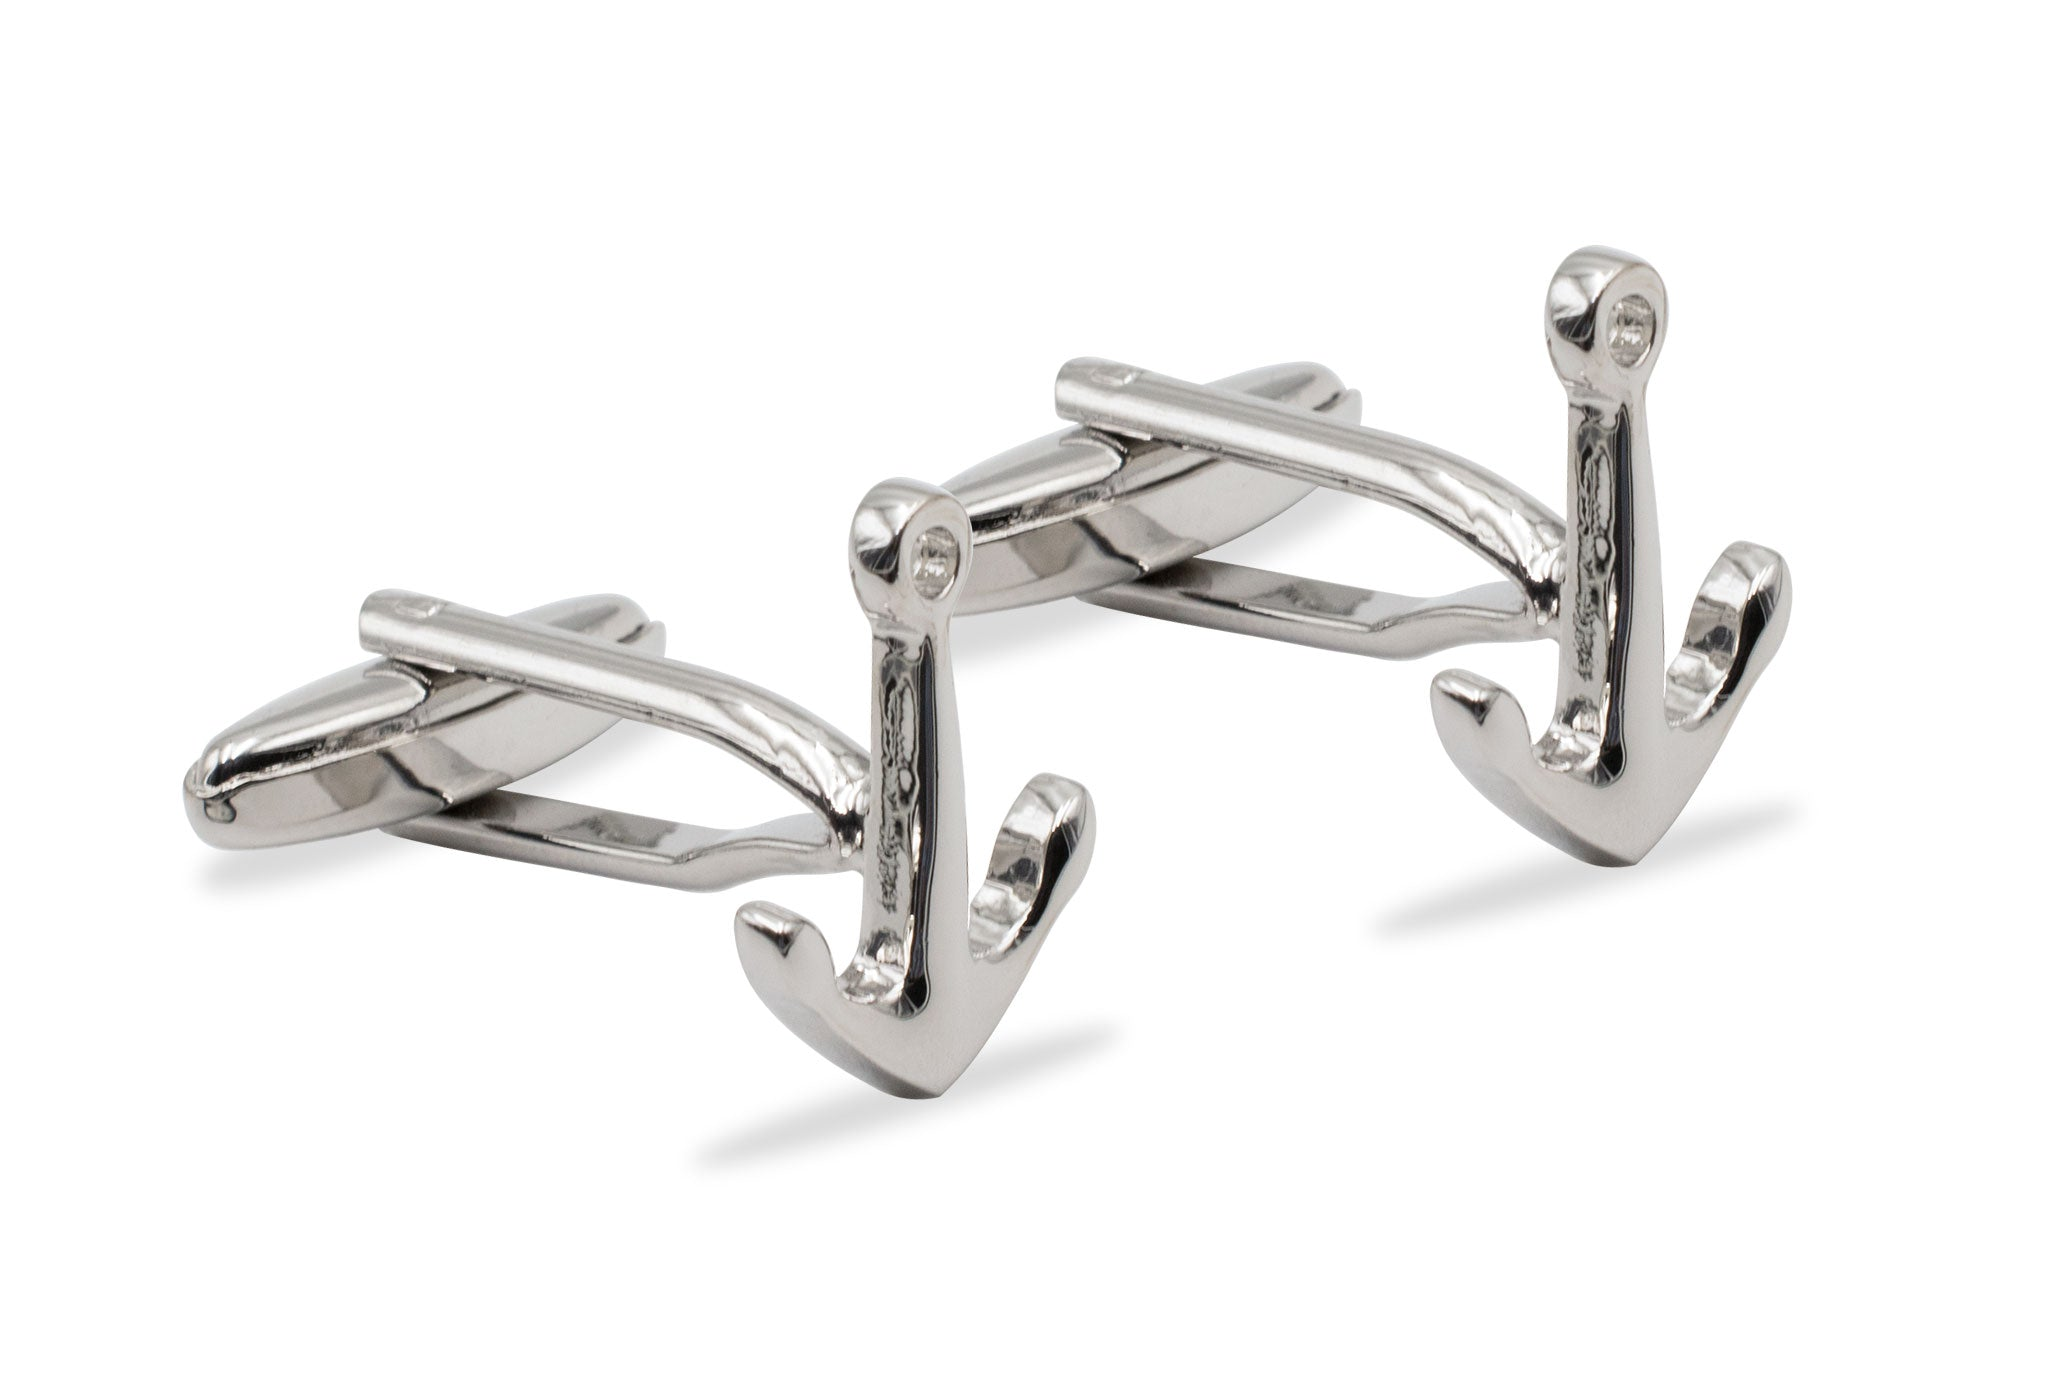 Caripito II Anchor Chrome Cufflink